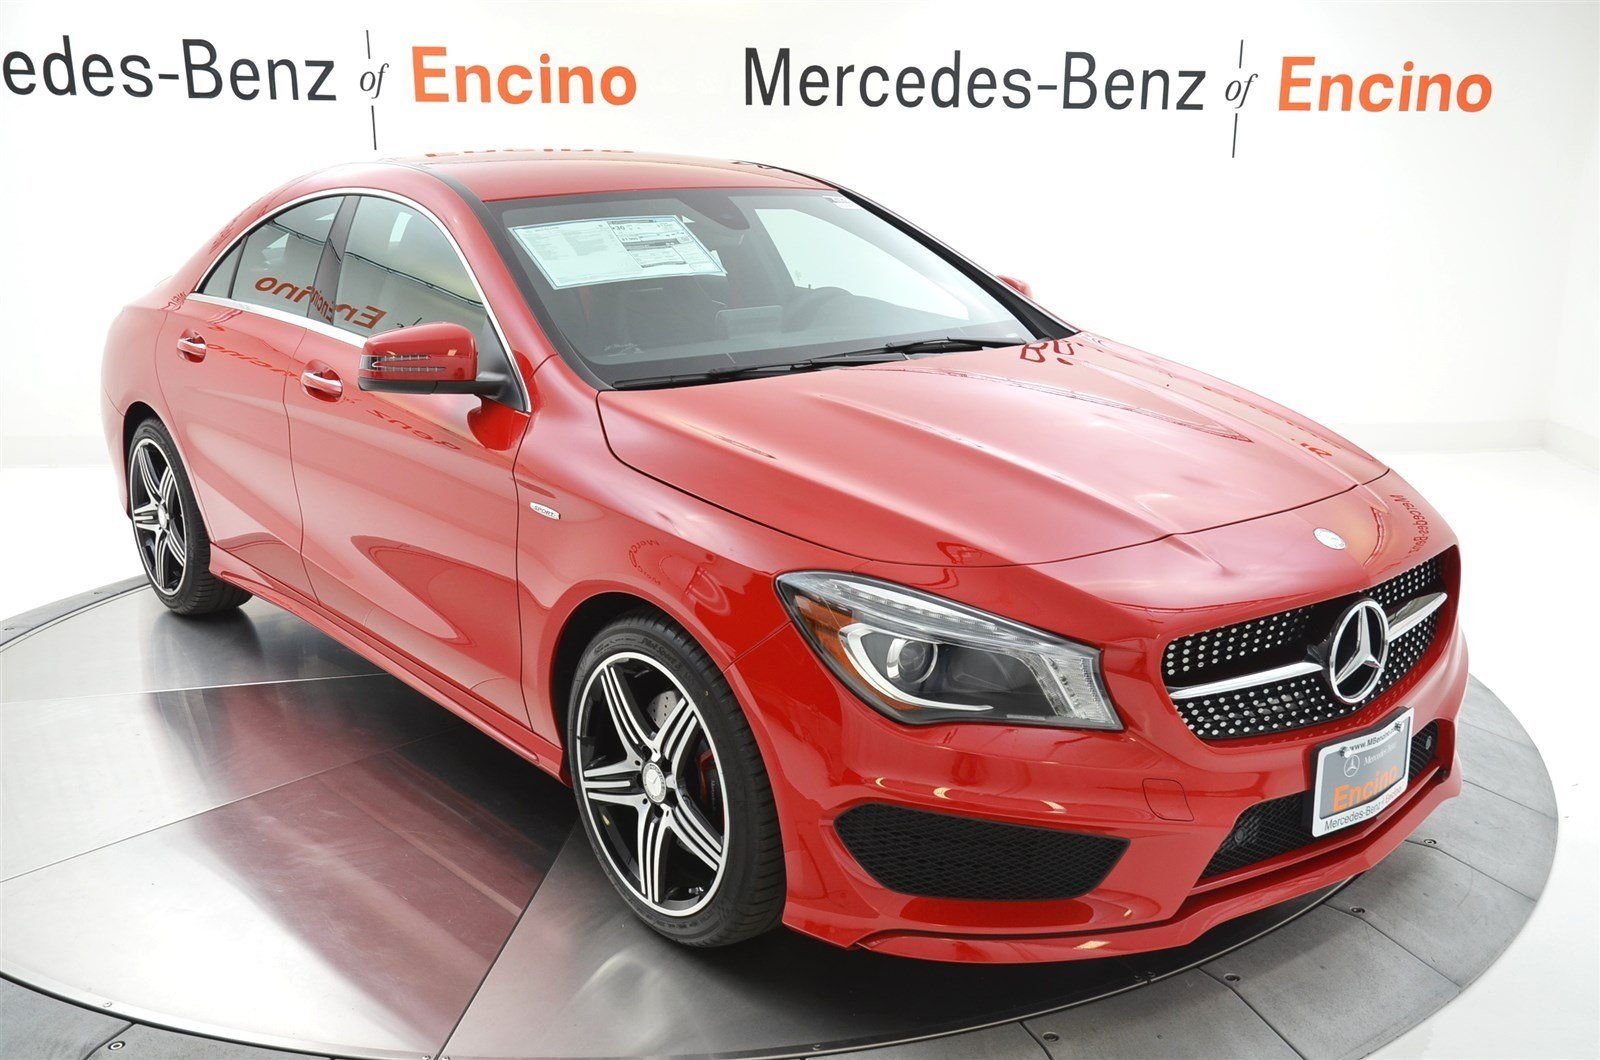 New 2015 Mercedes-Benz CLA 250 4-Door Coupe